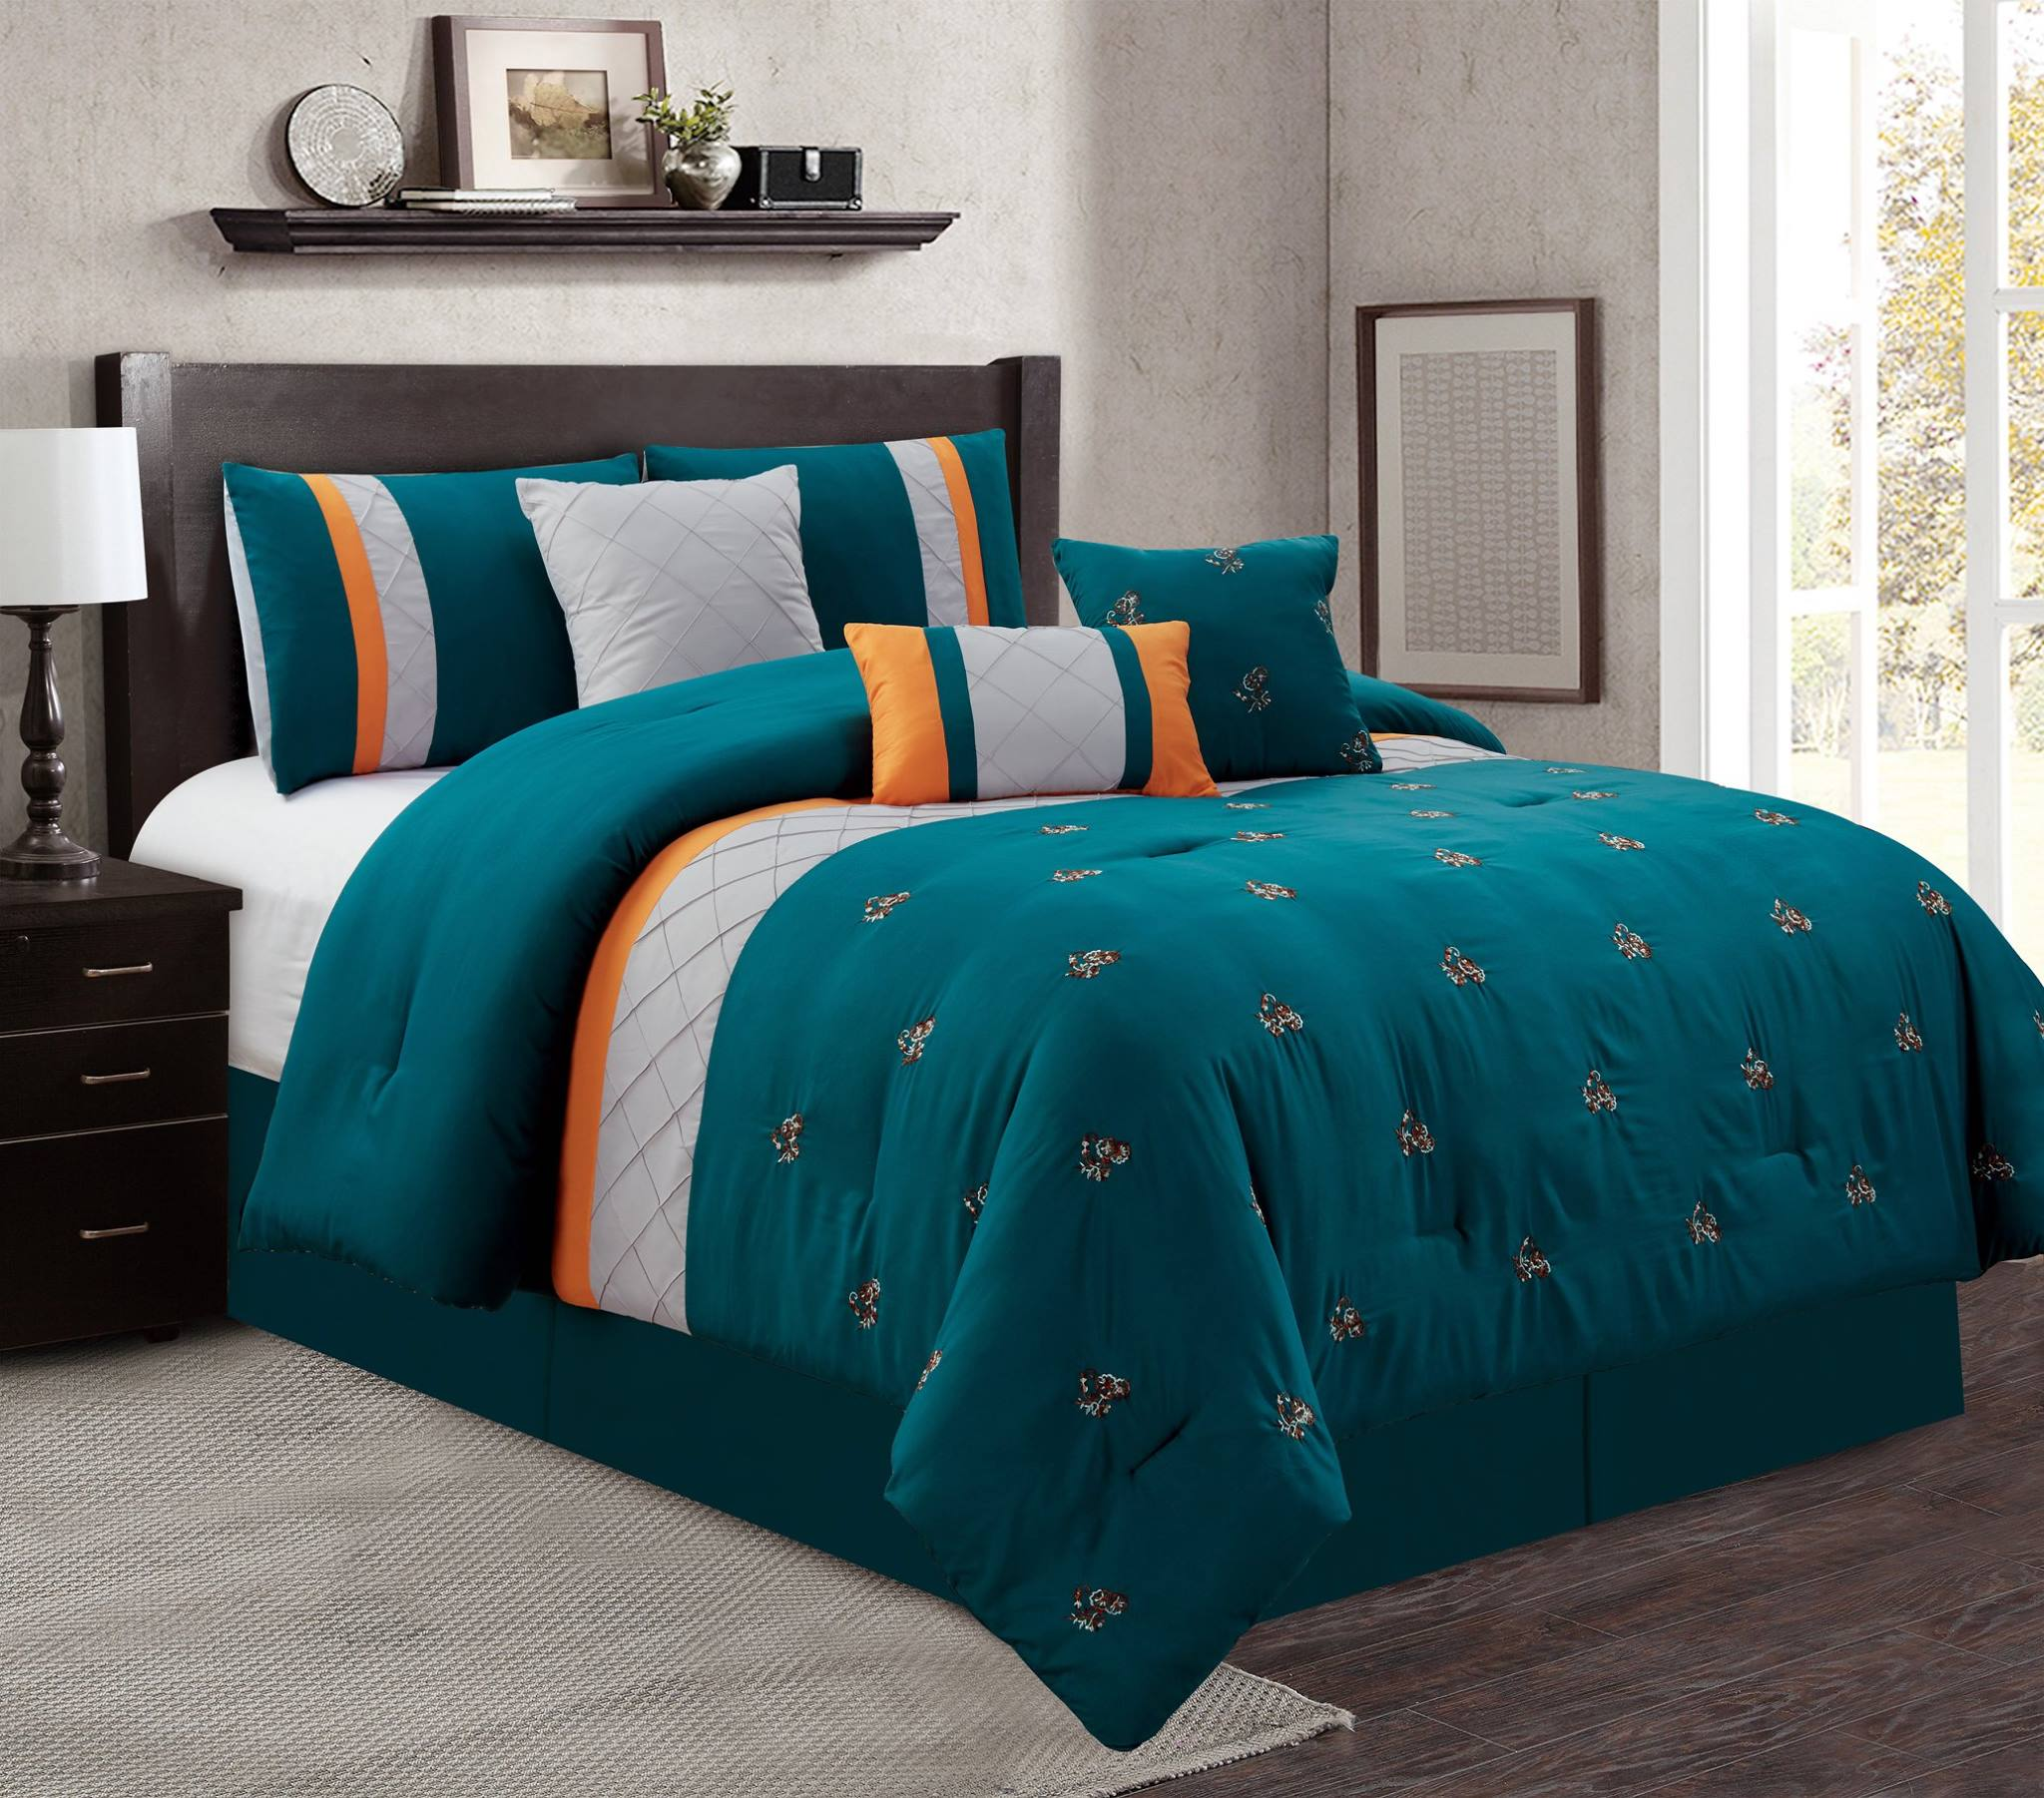 Luxury 7 Piece Comforter Set Teal Grey Orange Floral